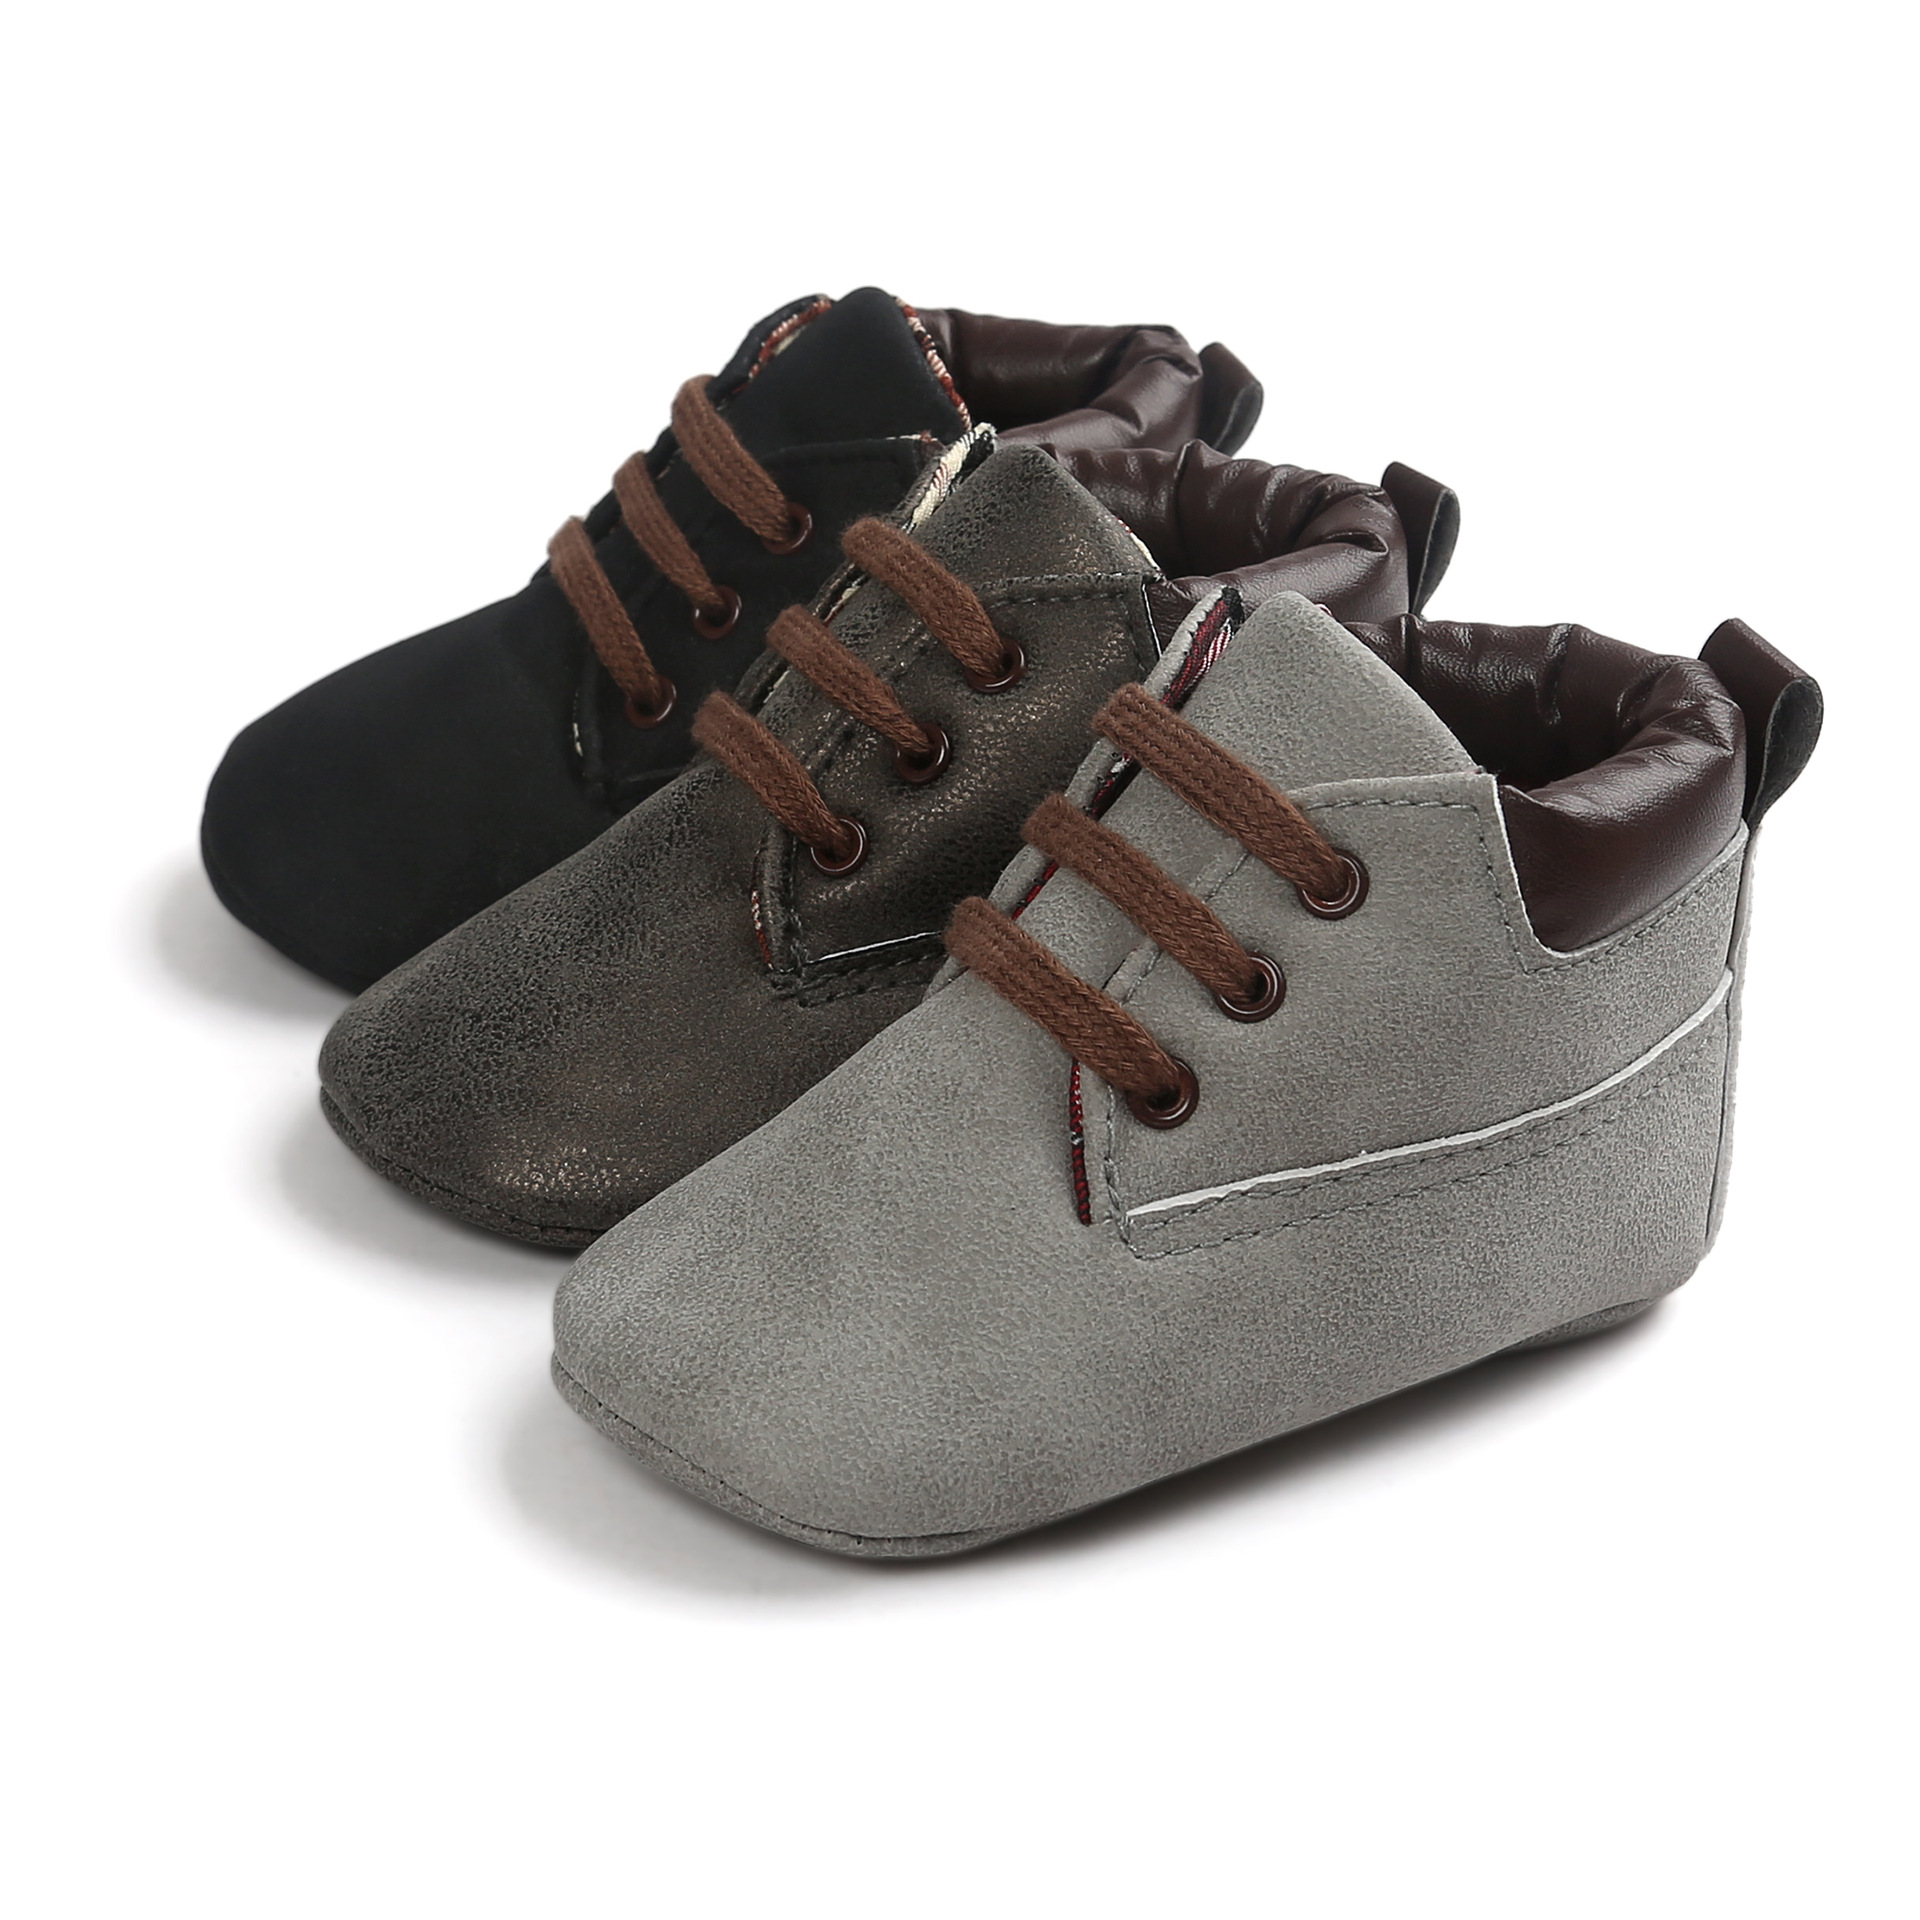 ROMIRUS-Baby-First-Walkers-Baby-Shoes-Soft-Bottom-Fashion-Tassels-Baby-Moccasin-Non-slip-PU-Leather-Prewalkers-Boots-2